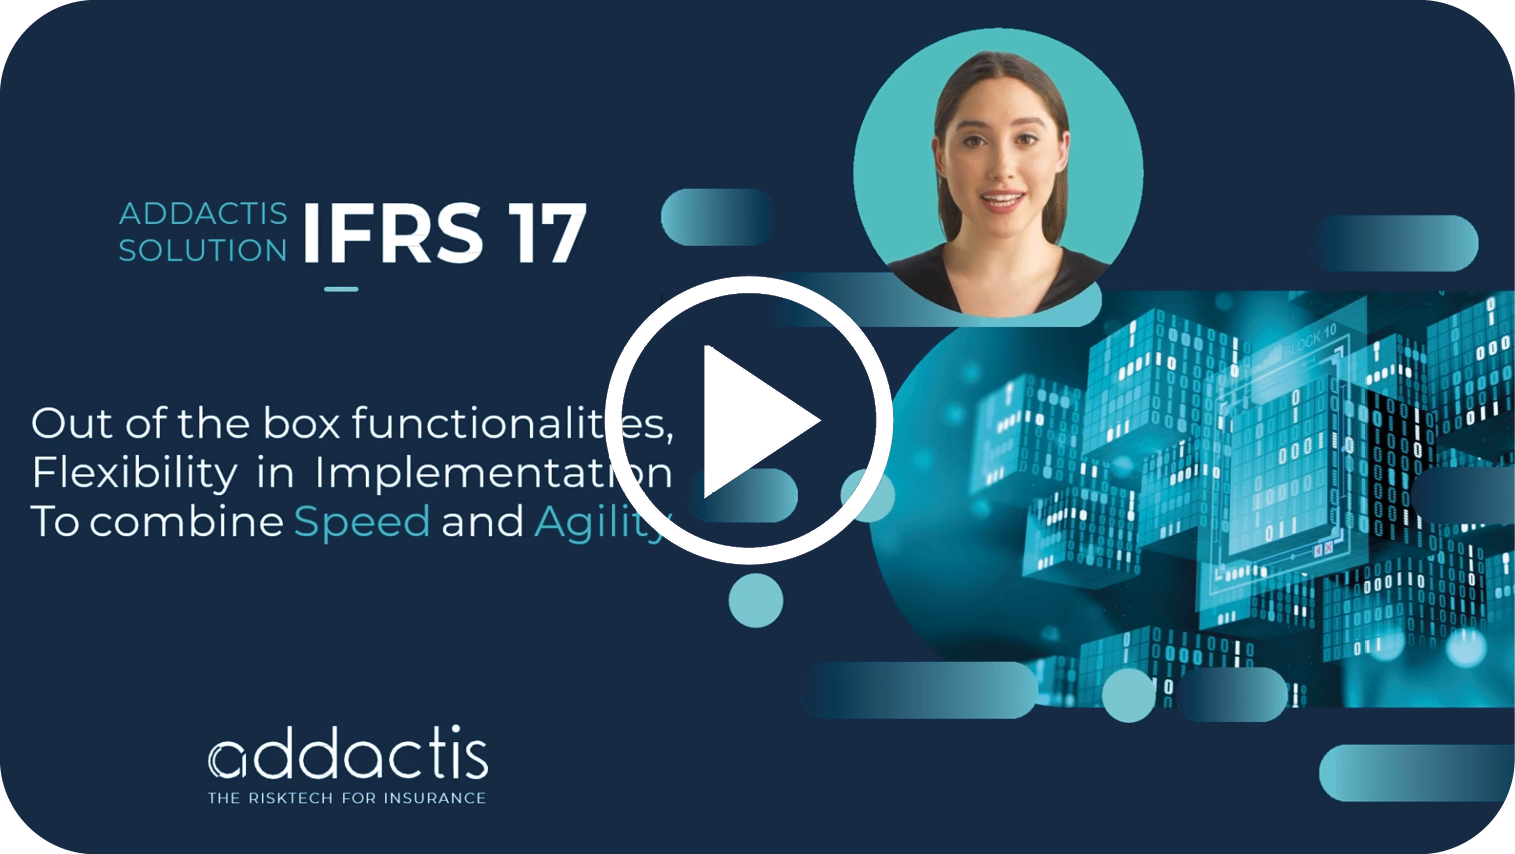 addactis-ifrs17-solution